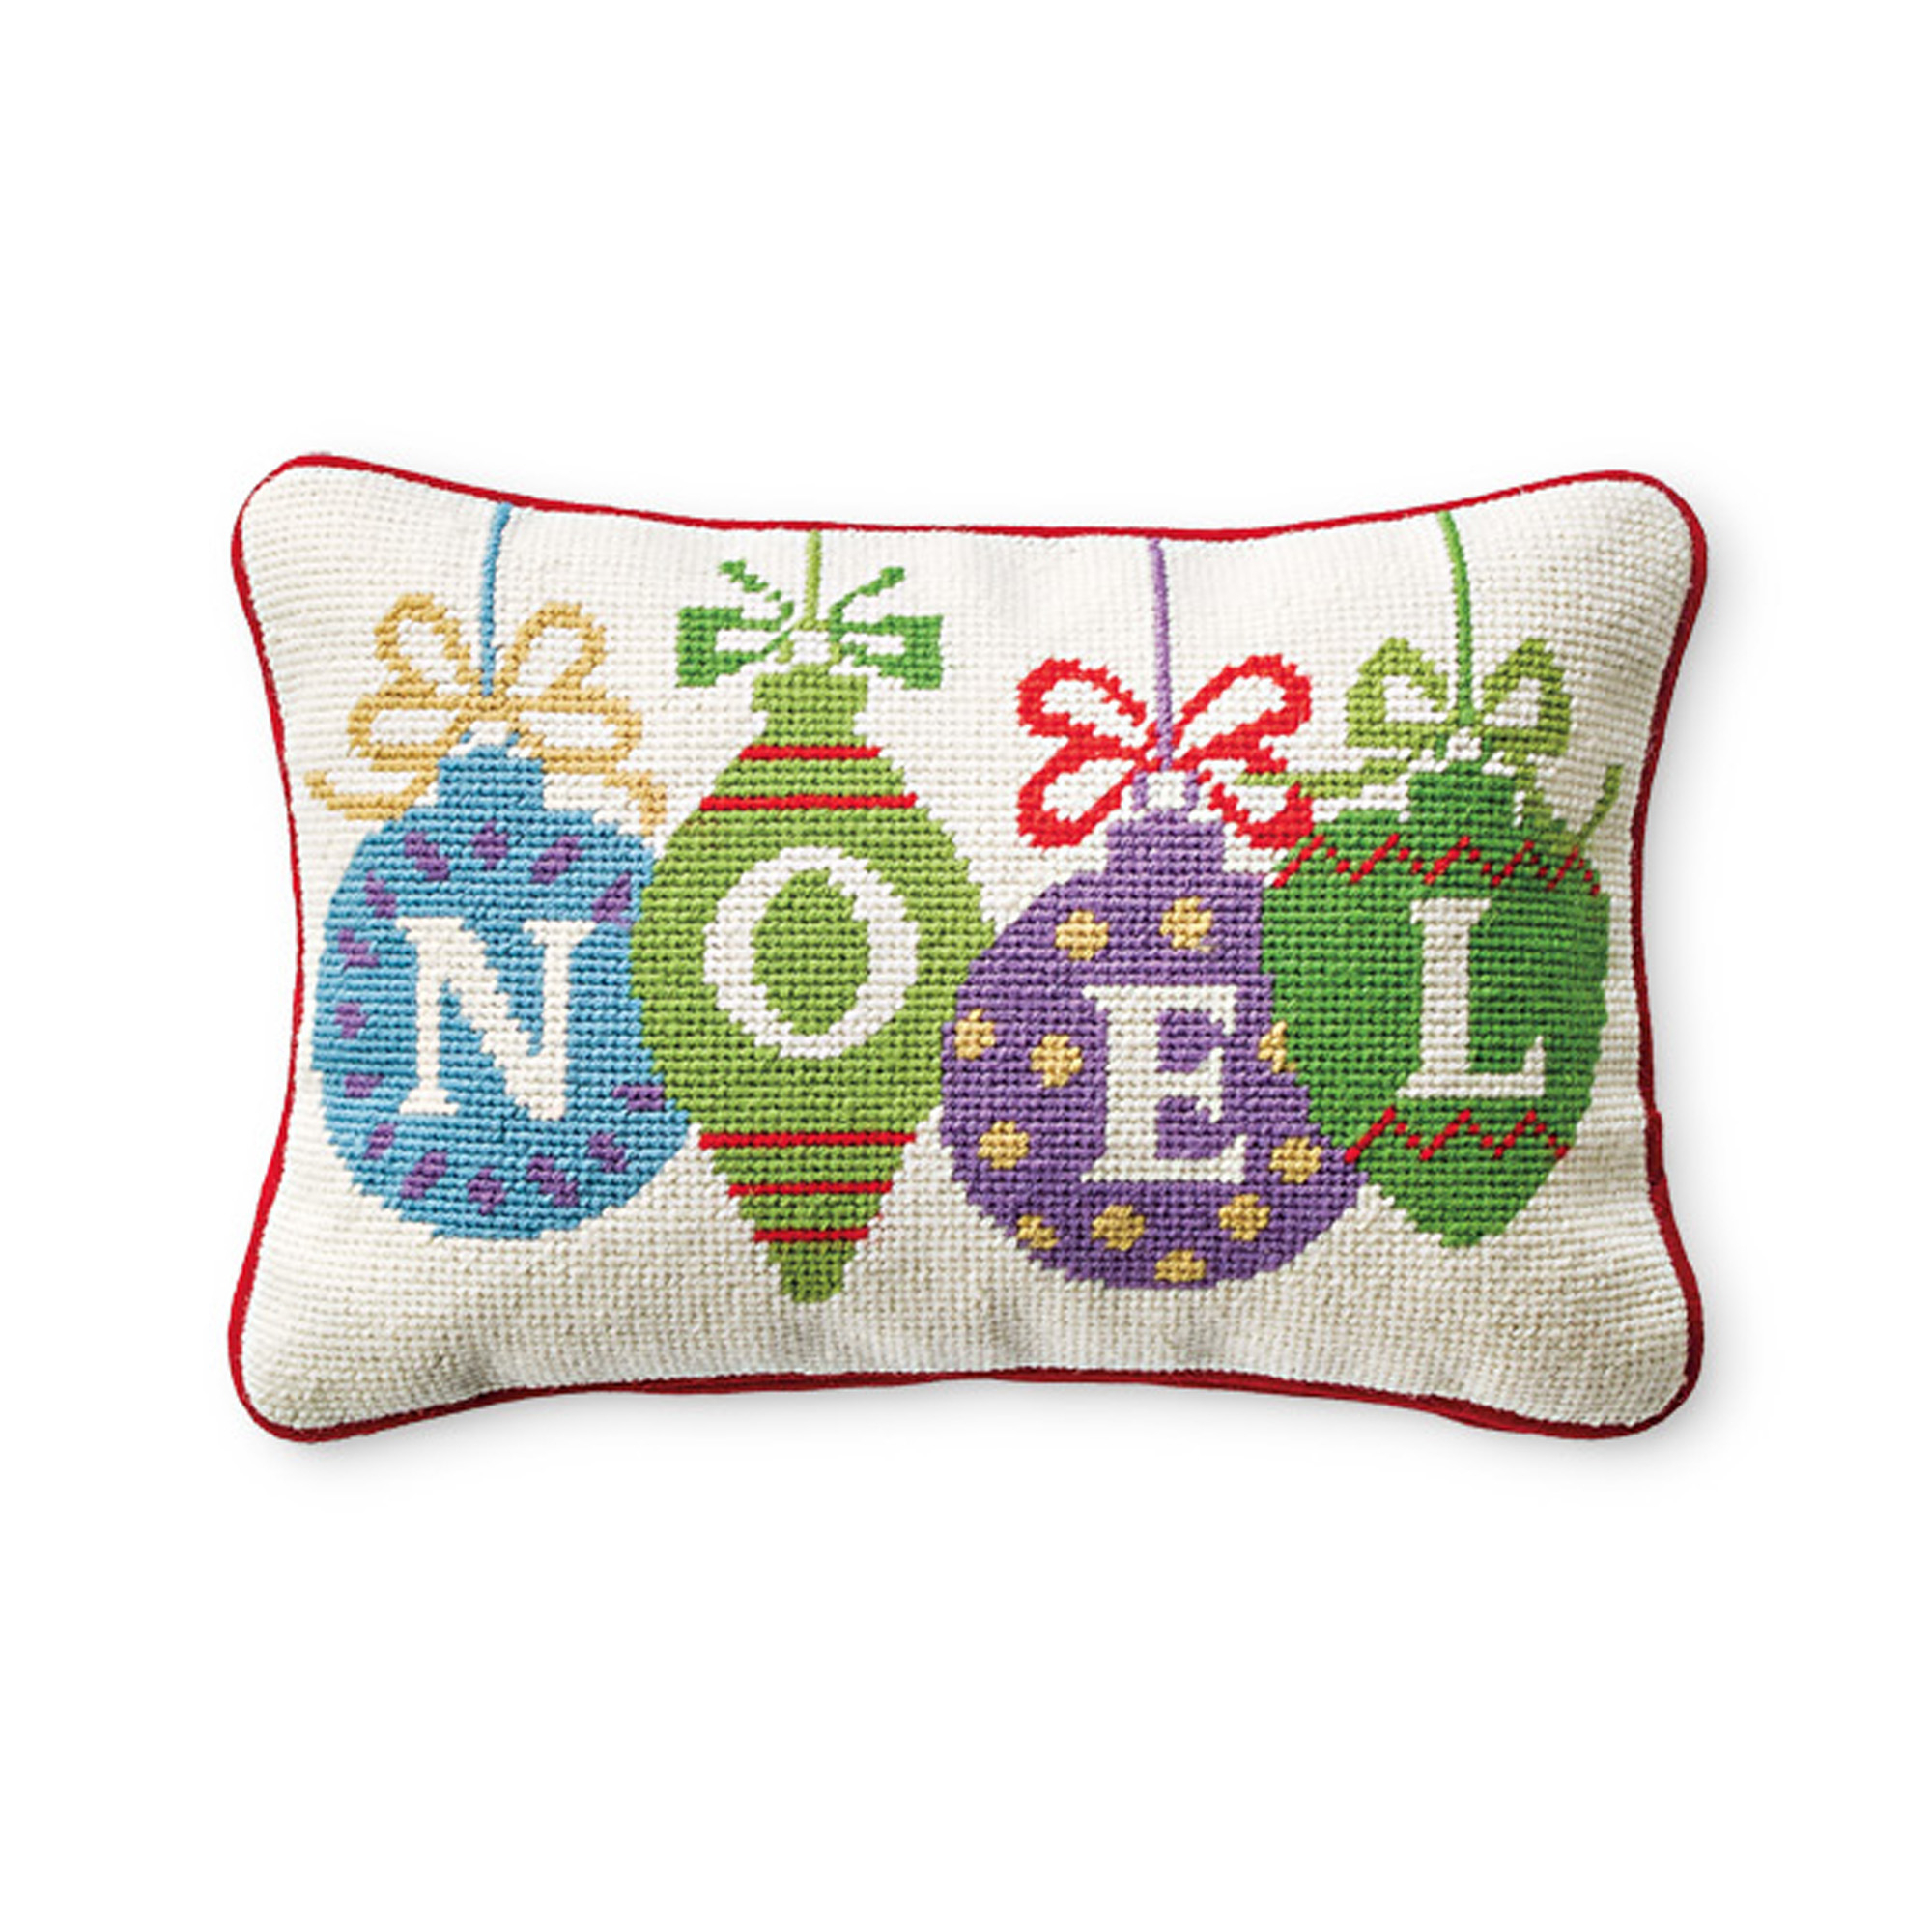 Noel Needlepoint Pillow